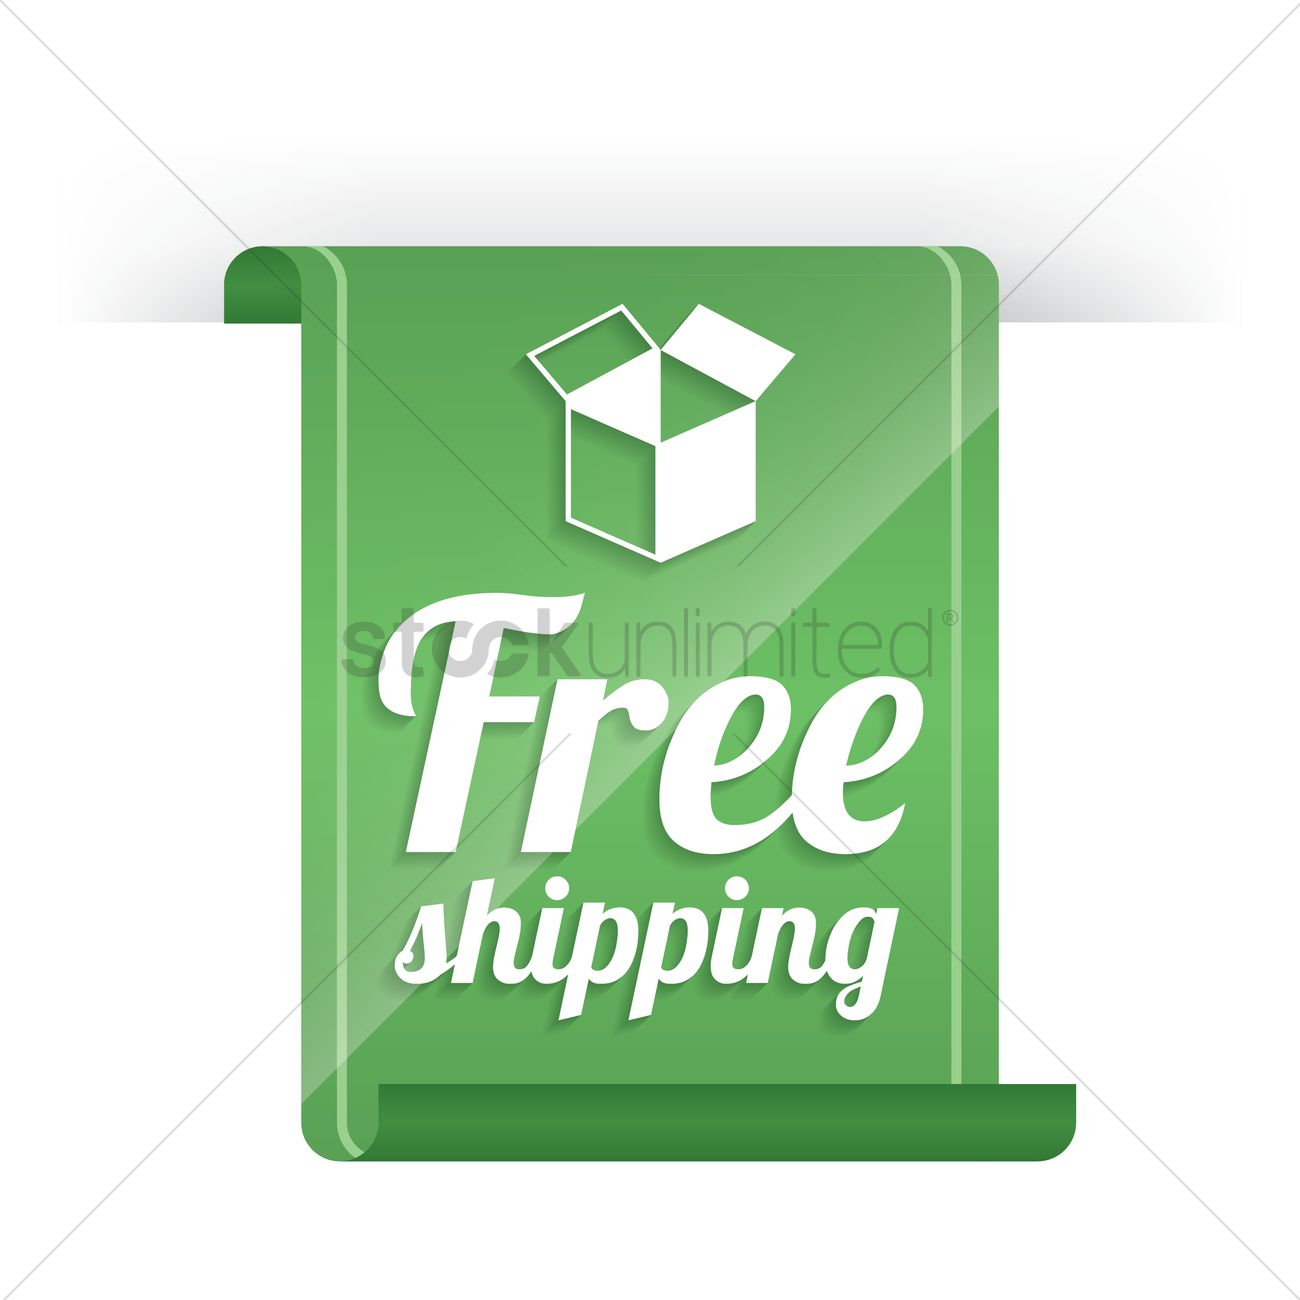 Free Shipping Label Design Vector Image 1475580 StockUnlimited Free Shipping  Label Design 1475580 Free Shipping Label  Mailing Label Designs